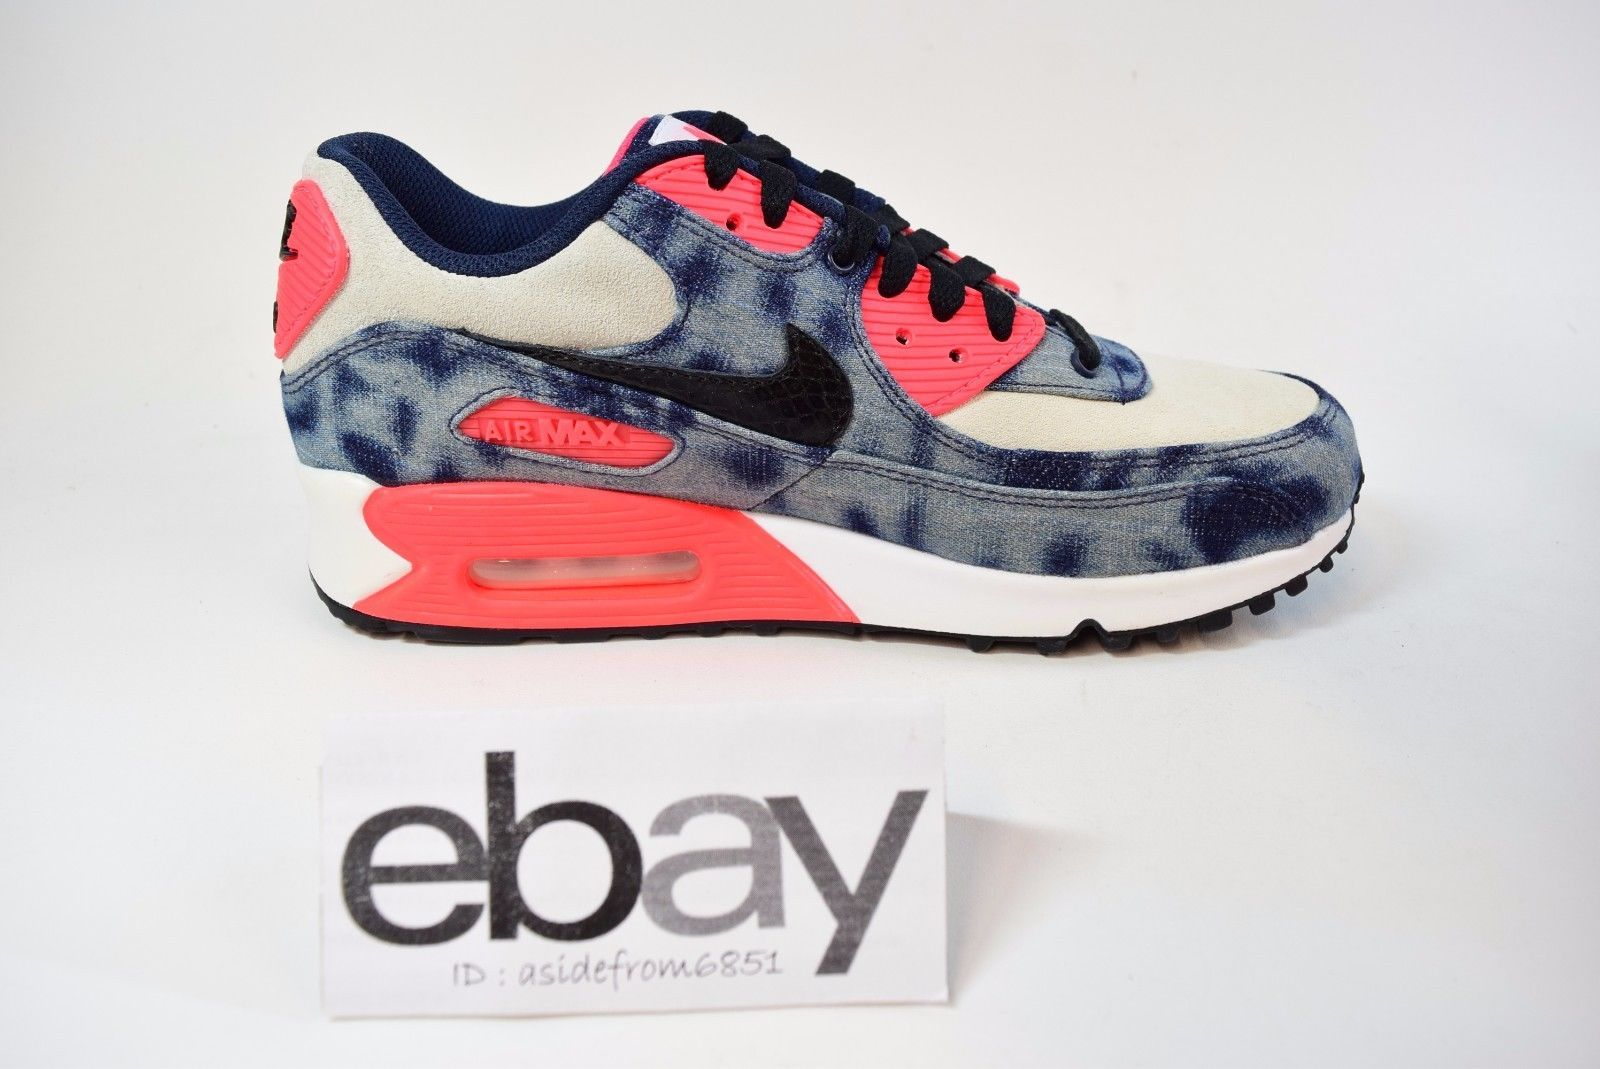 atmos x nike air max 90 ebay auction